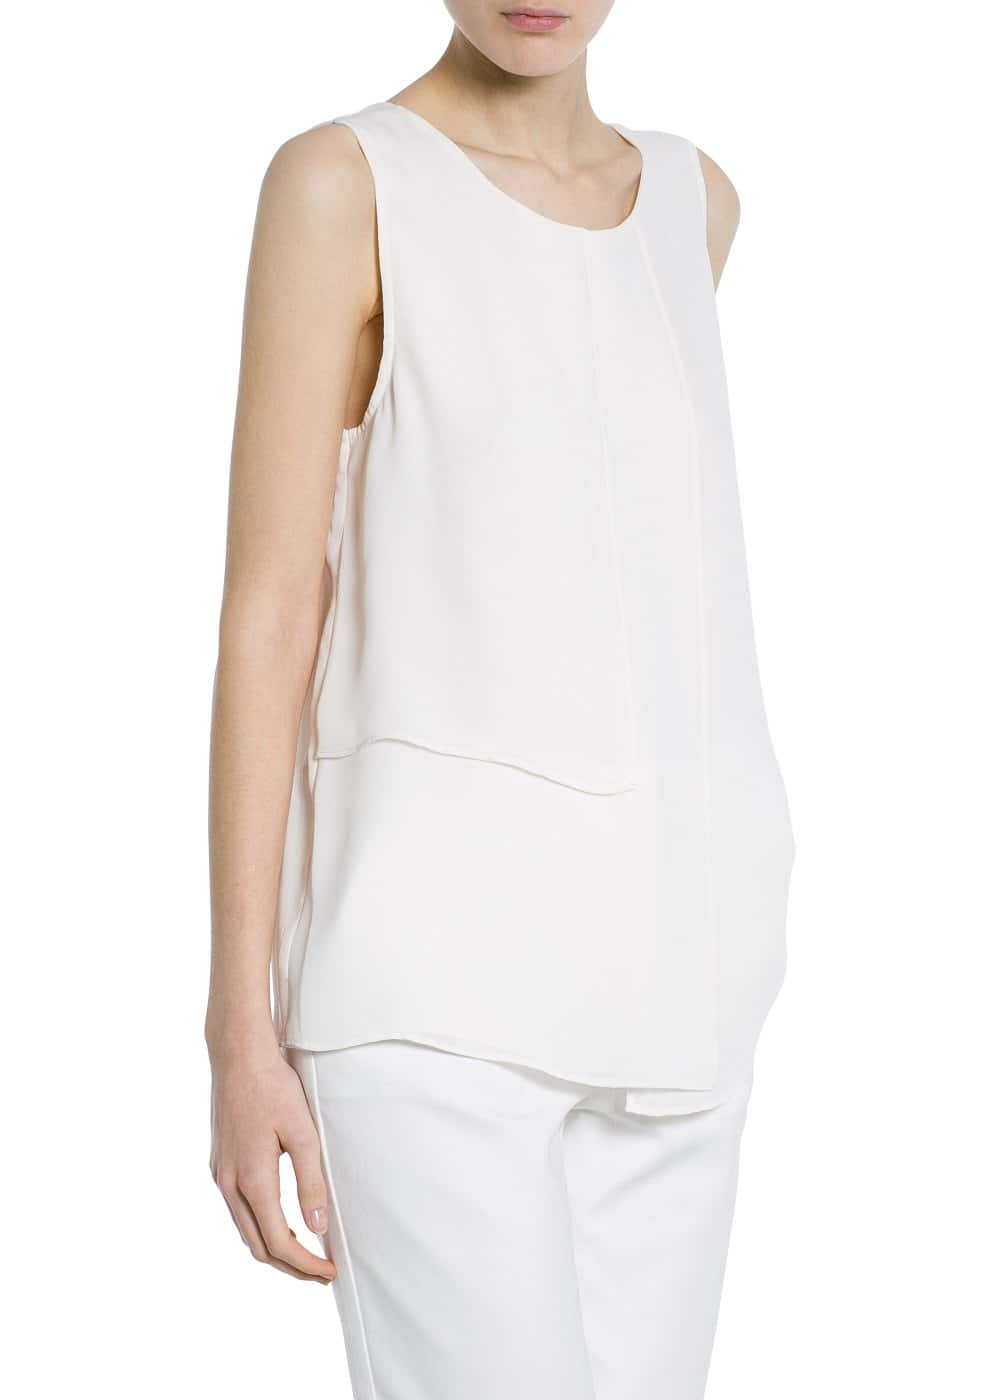 Draped detail top